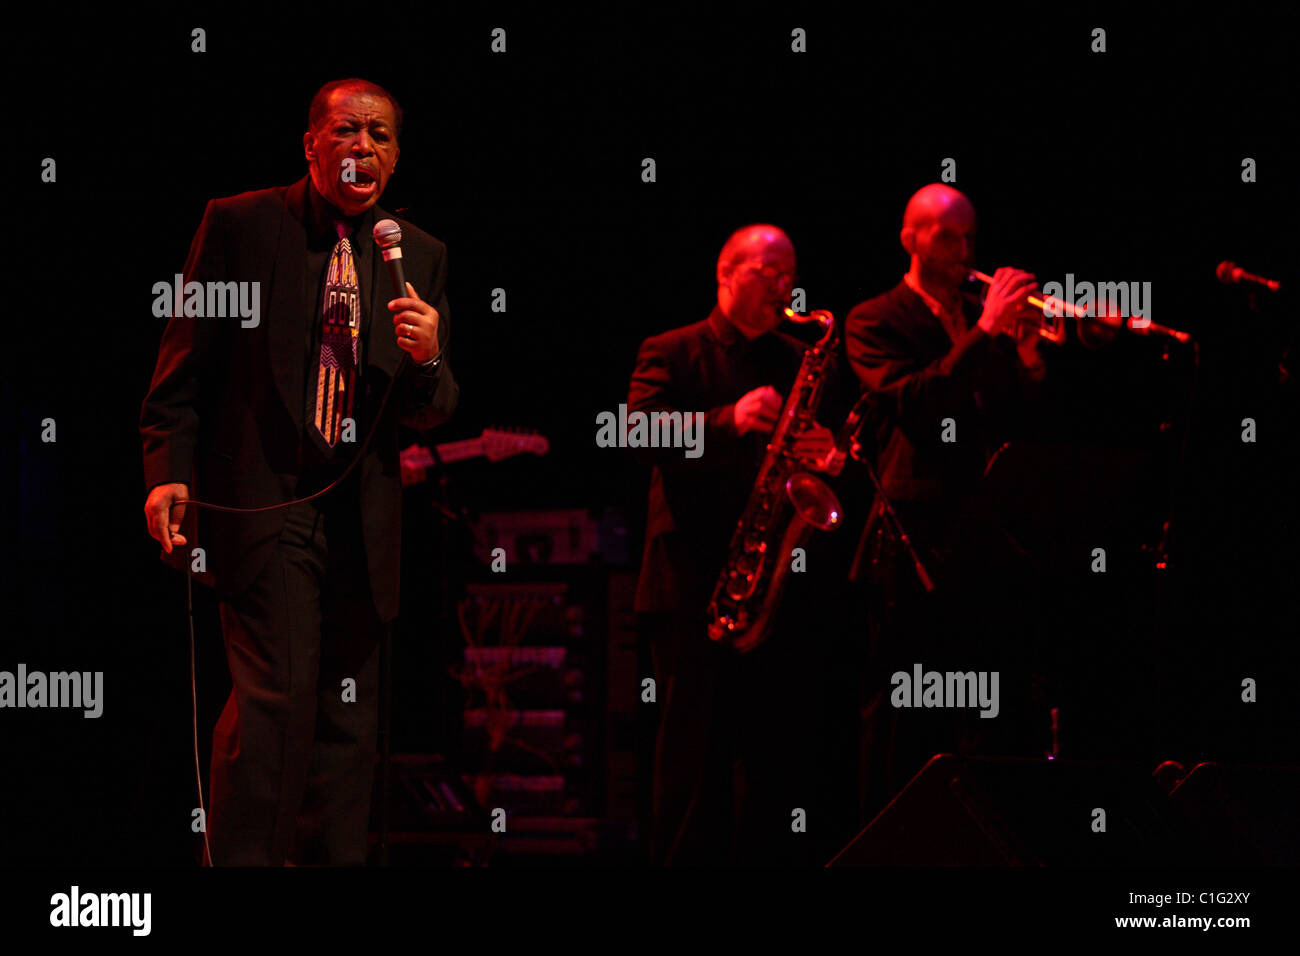 Ben E King Performing live March 2011 - Stock Image